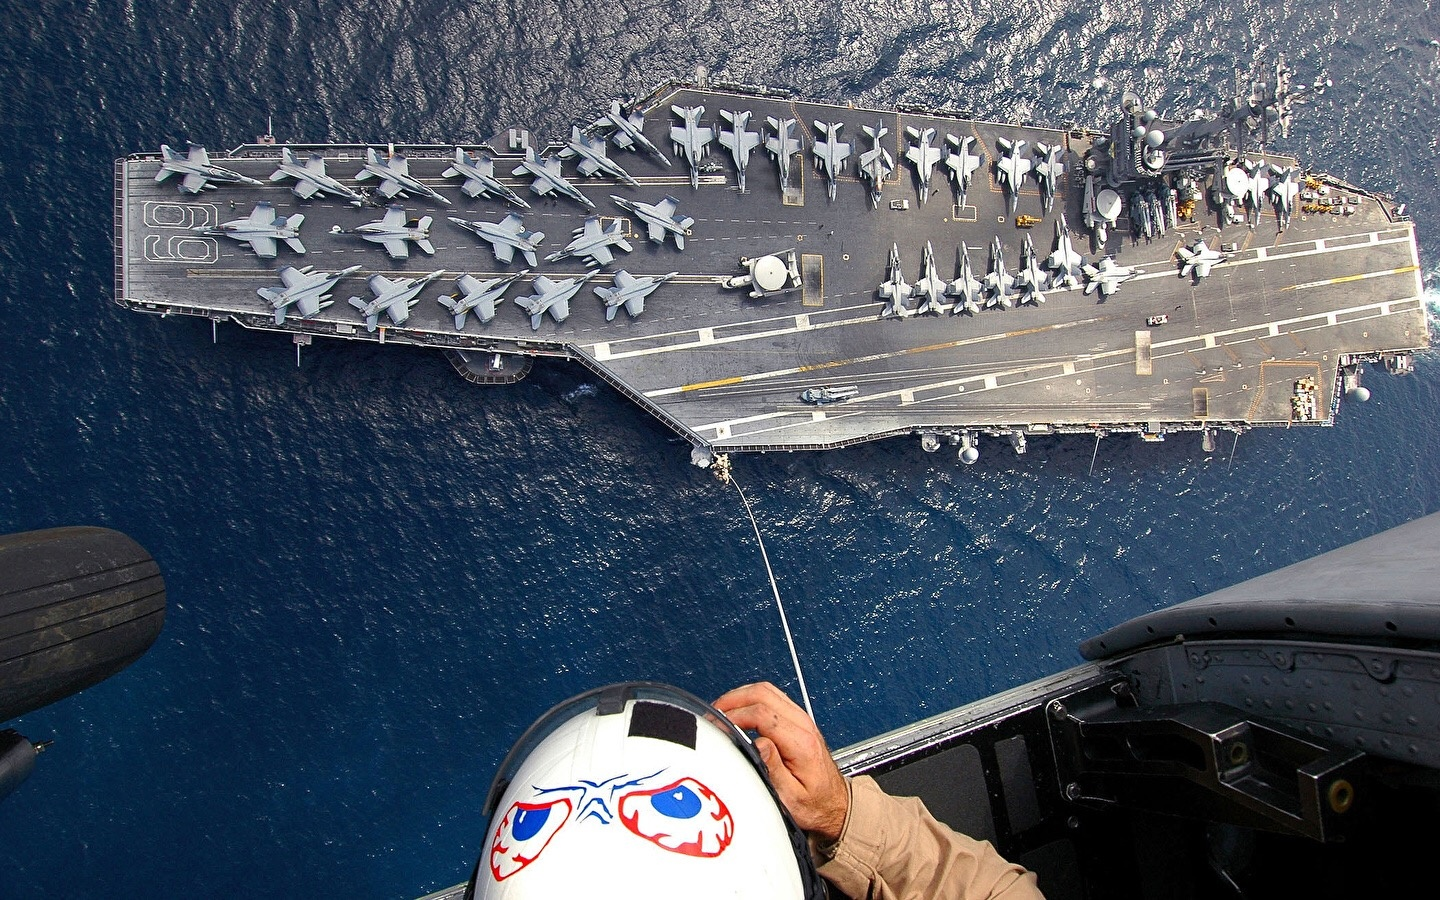 Why don't US aircraft carriers land planes straight and launch at an